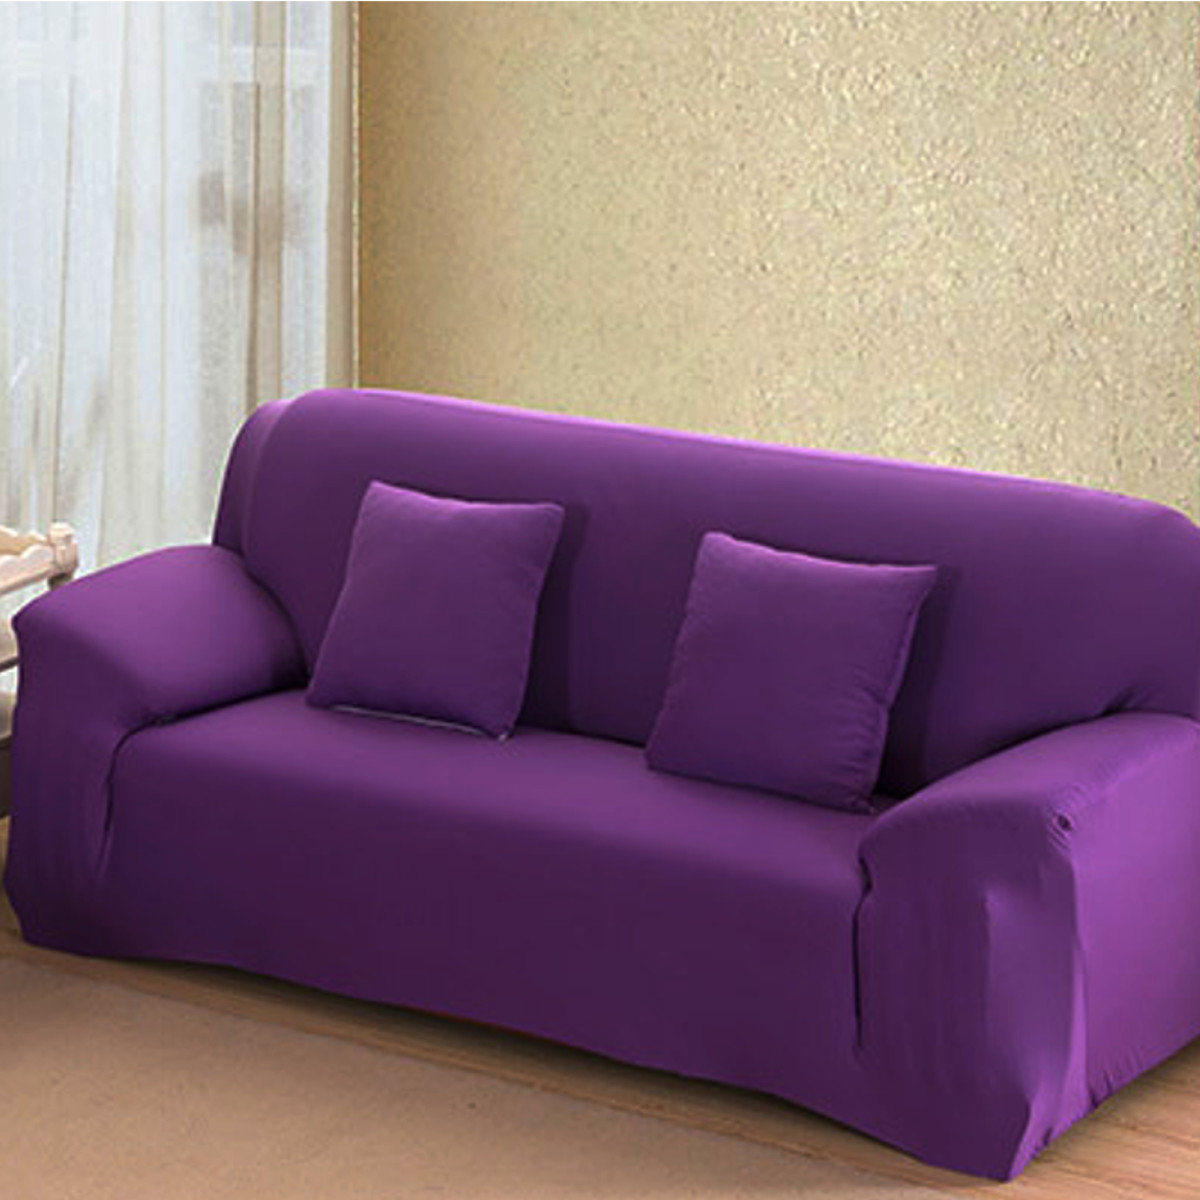 purple sleeper sofa slipcover best quality cheap sofas 4 size stretch fit cover couch easy removable